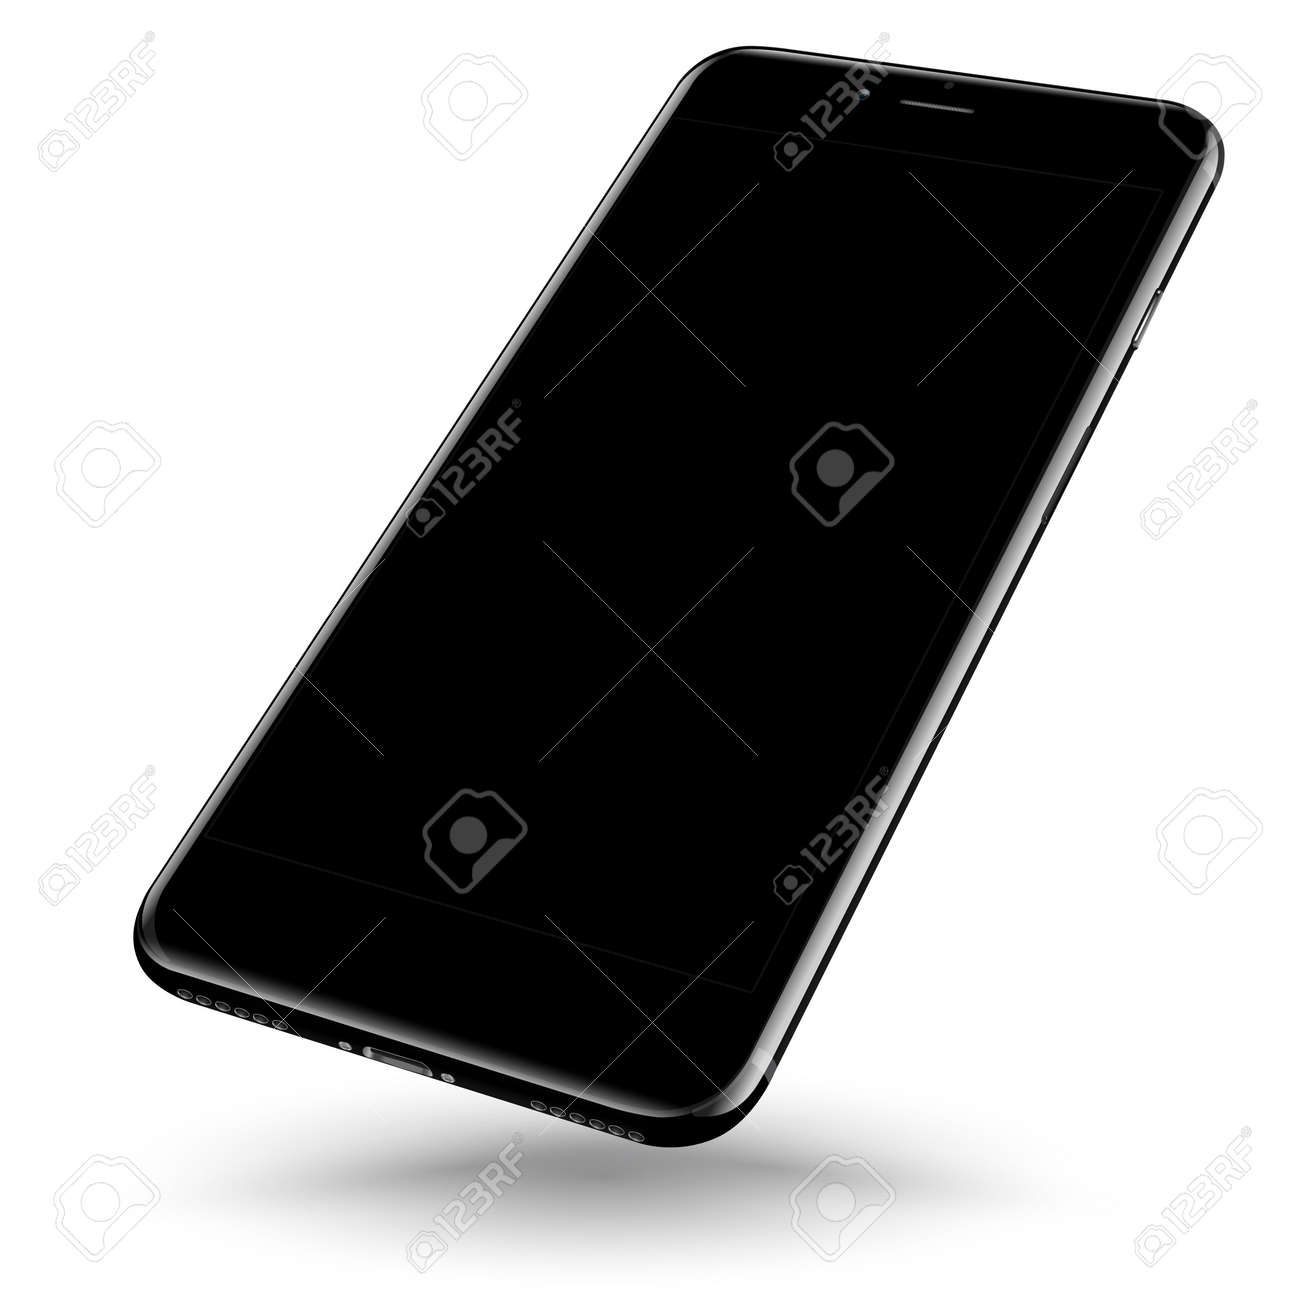 Perspective smartphone realistic mock-up. Vector illustration. - 63594510